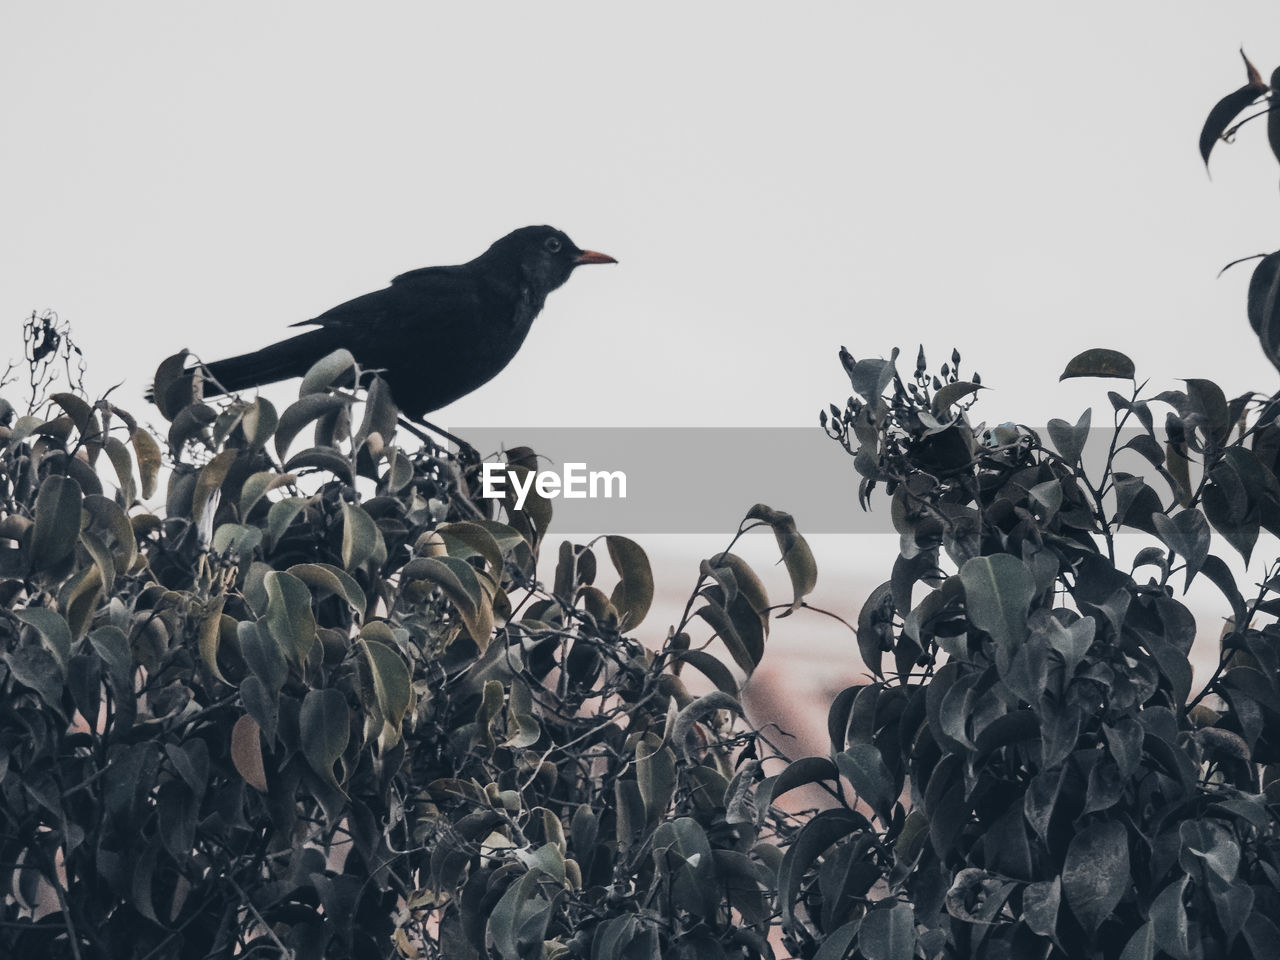 bird, animal themes, animal, vertebrate, animals in the wild, animal wildlife, sky, perching, plant, clear sky, nature, low angle view, no people, group of animals, day, black color, outdoors, growth, leaf, blackbird